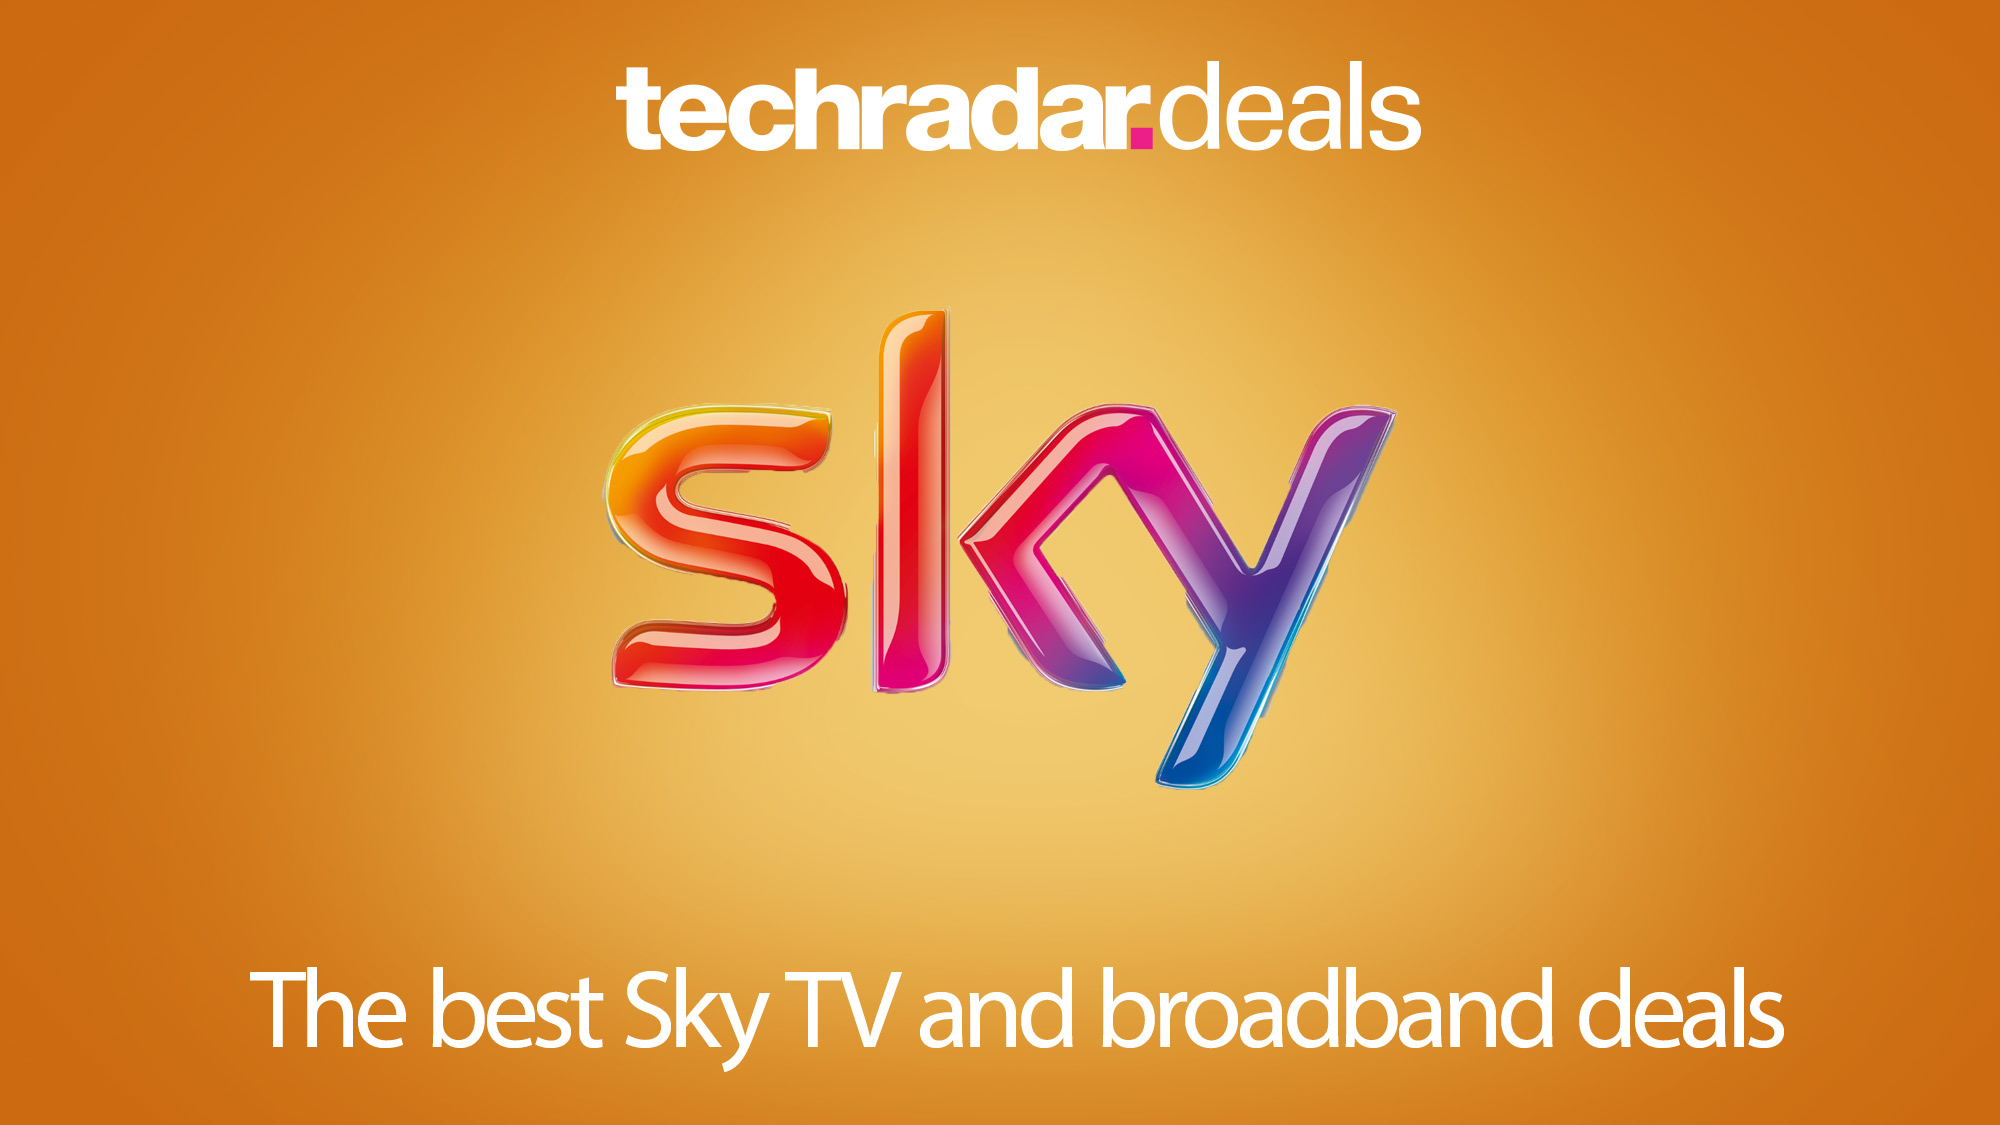 The best Sky TV and broadband deals and packages in